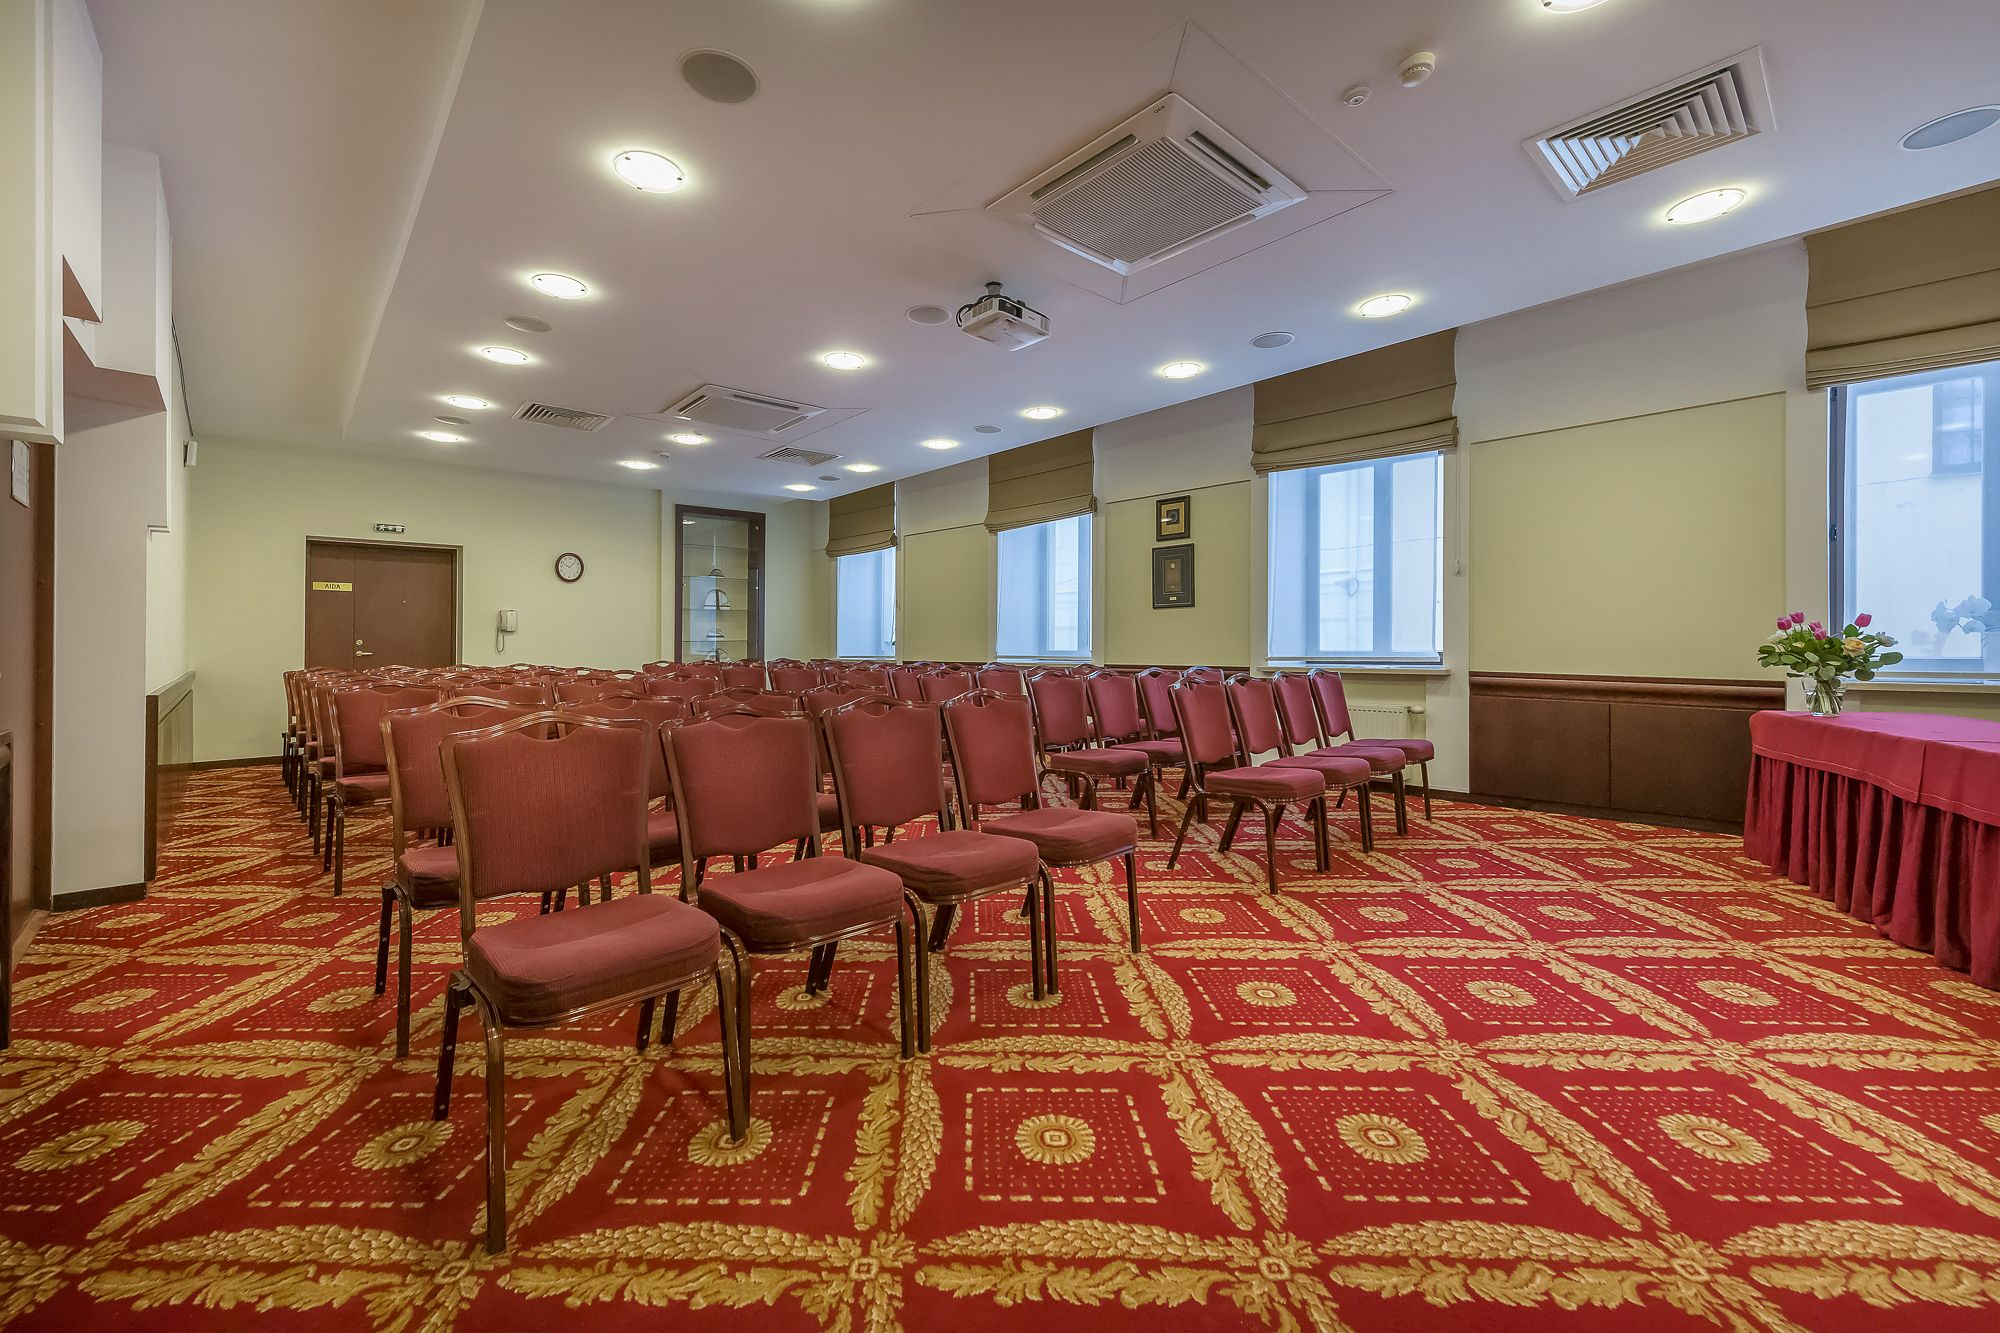 Artis Centrum Hotels Conference Room - Carmen